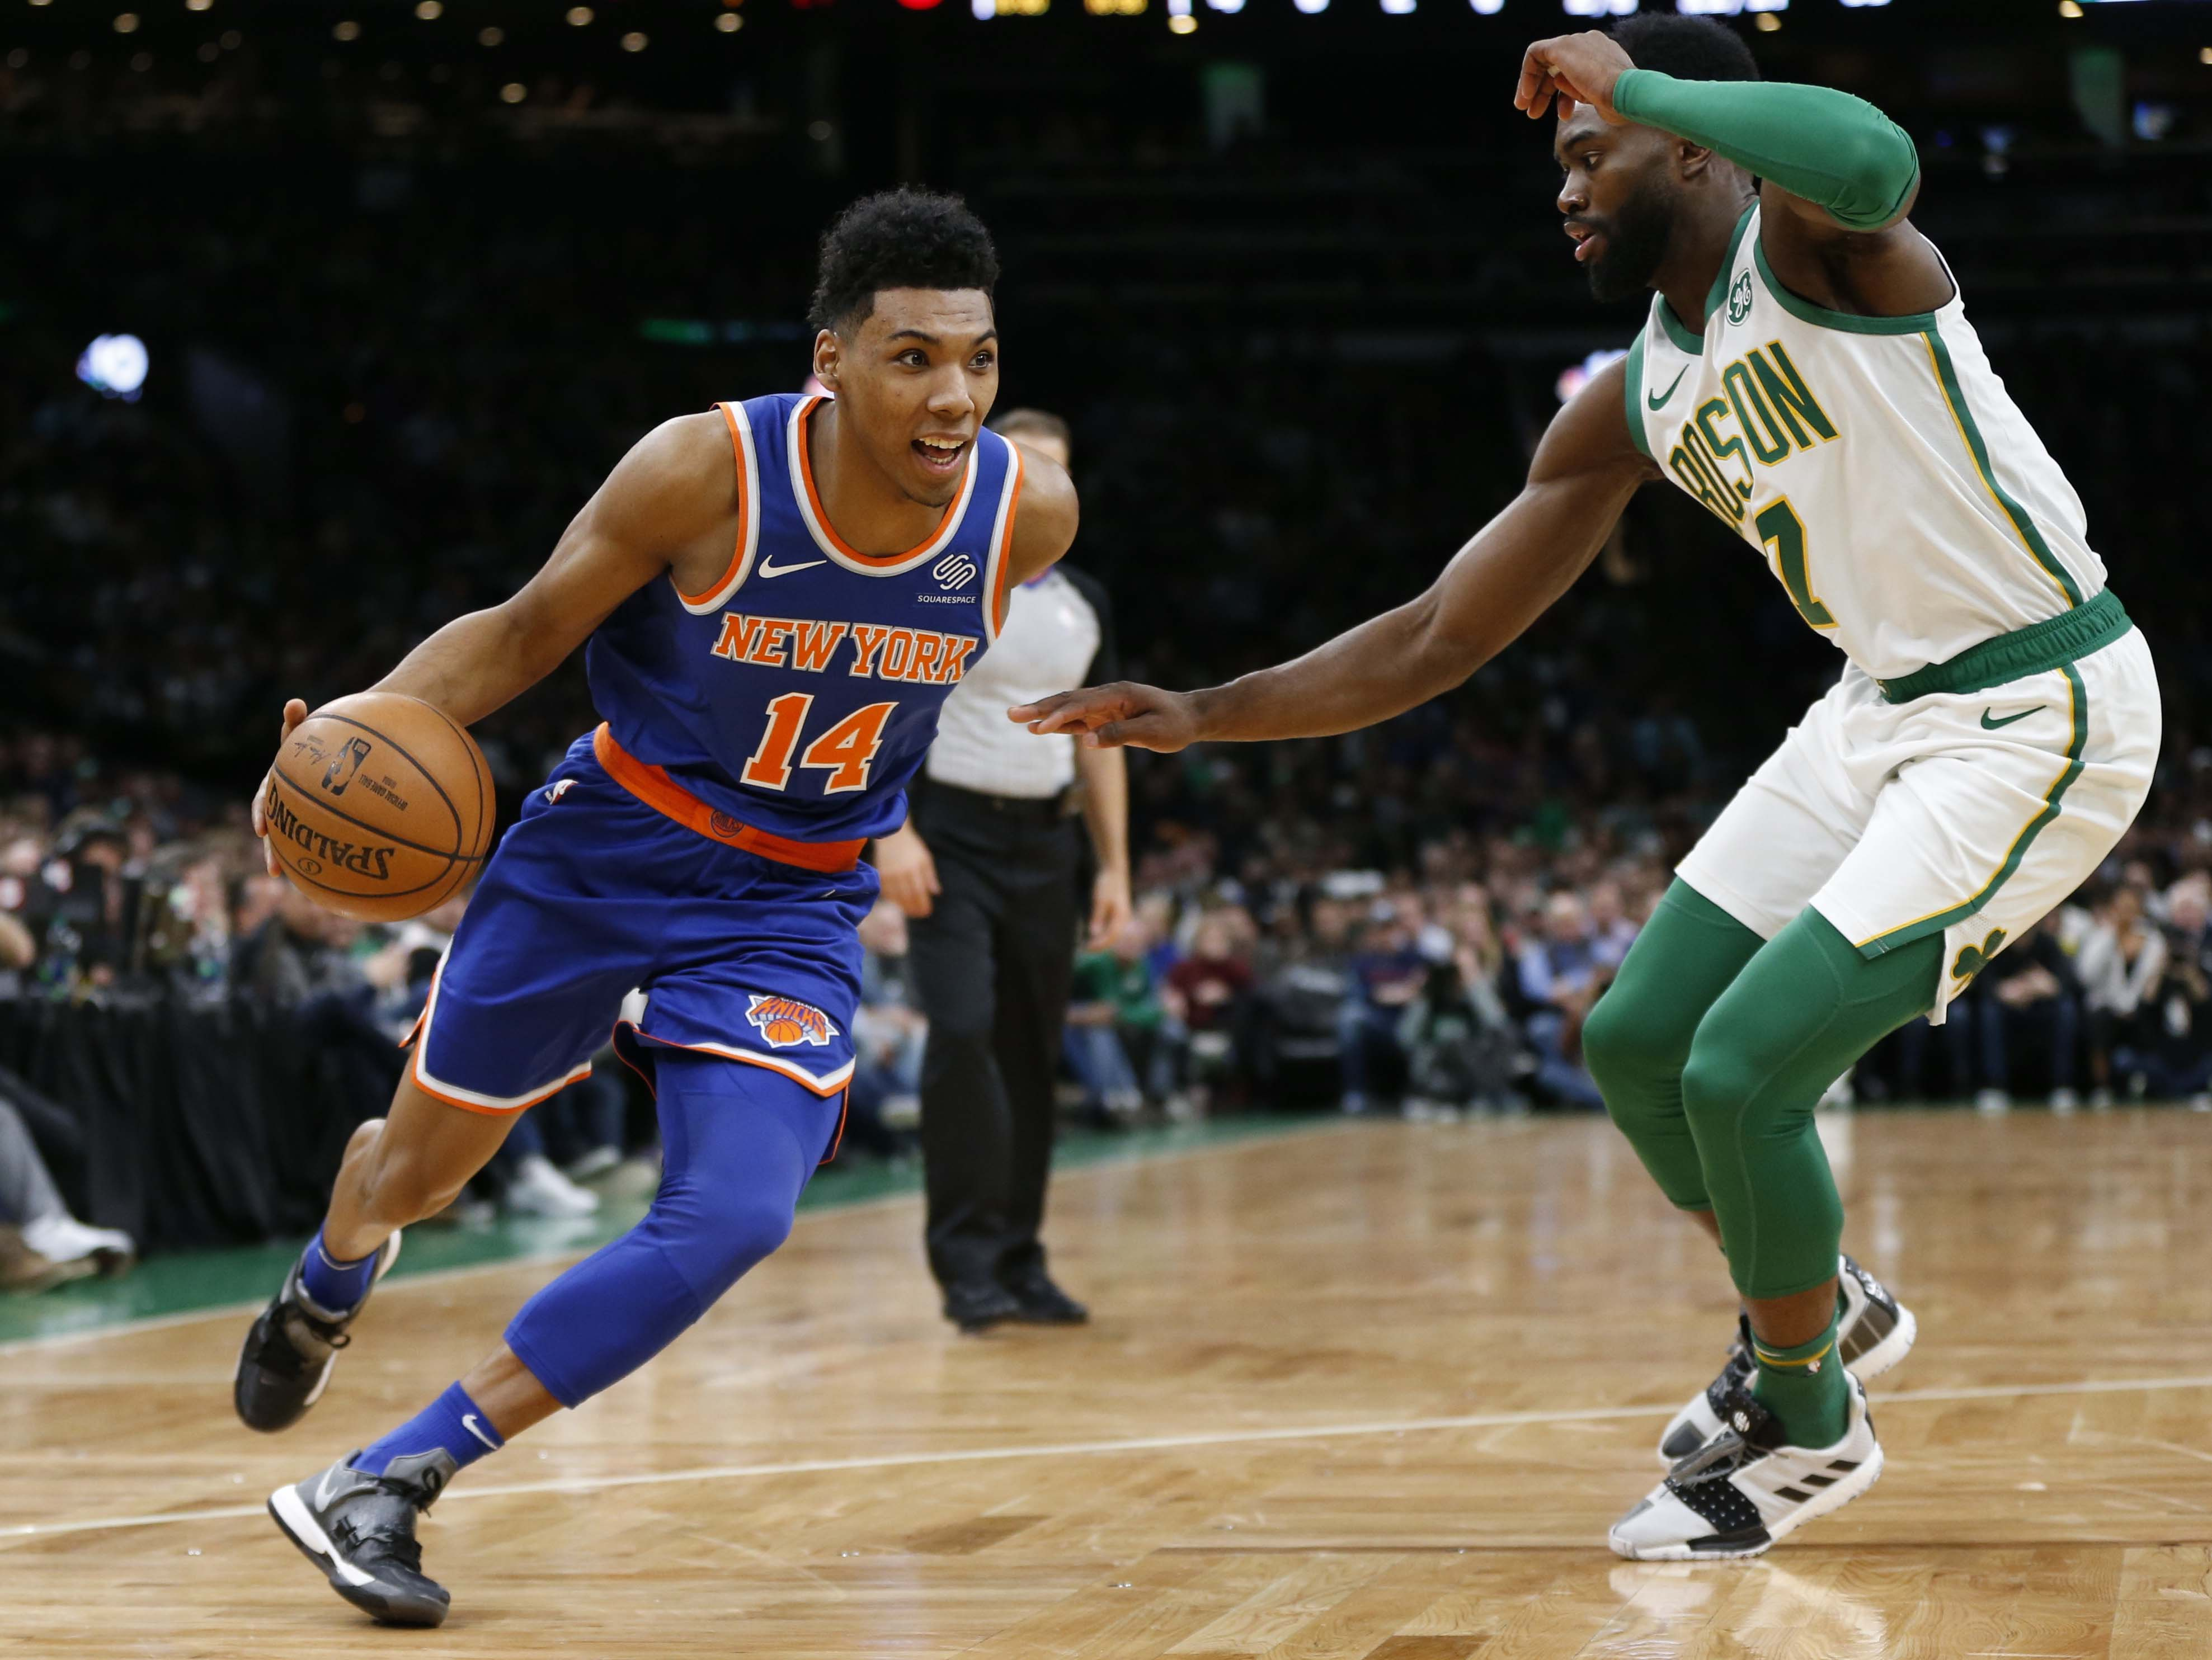 887e182f2 Knicks Blown Out By Boston Celtics While Ntilikina Earns Another DNP